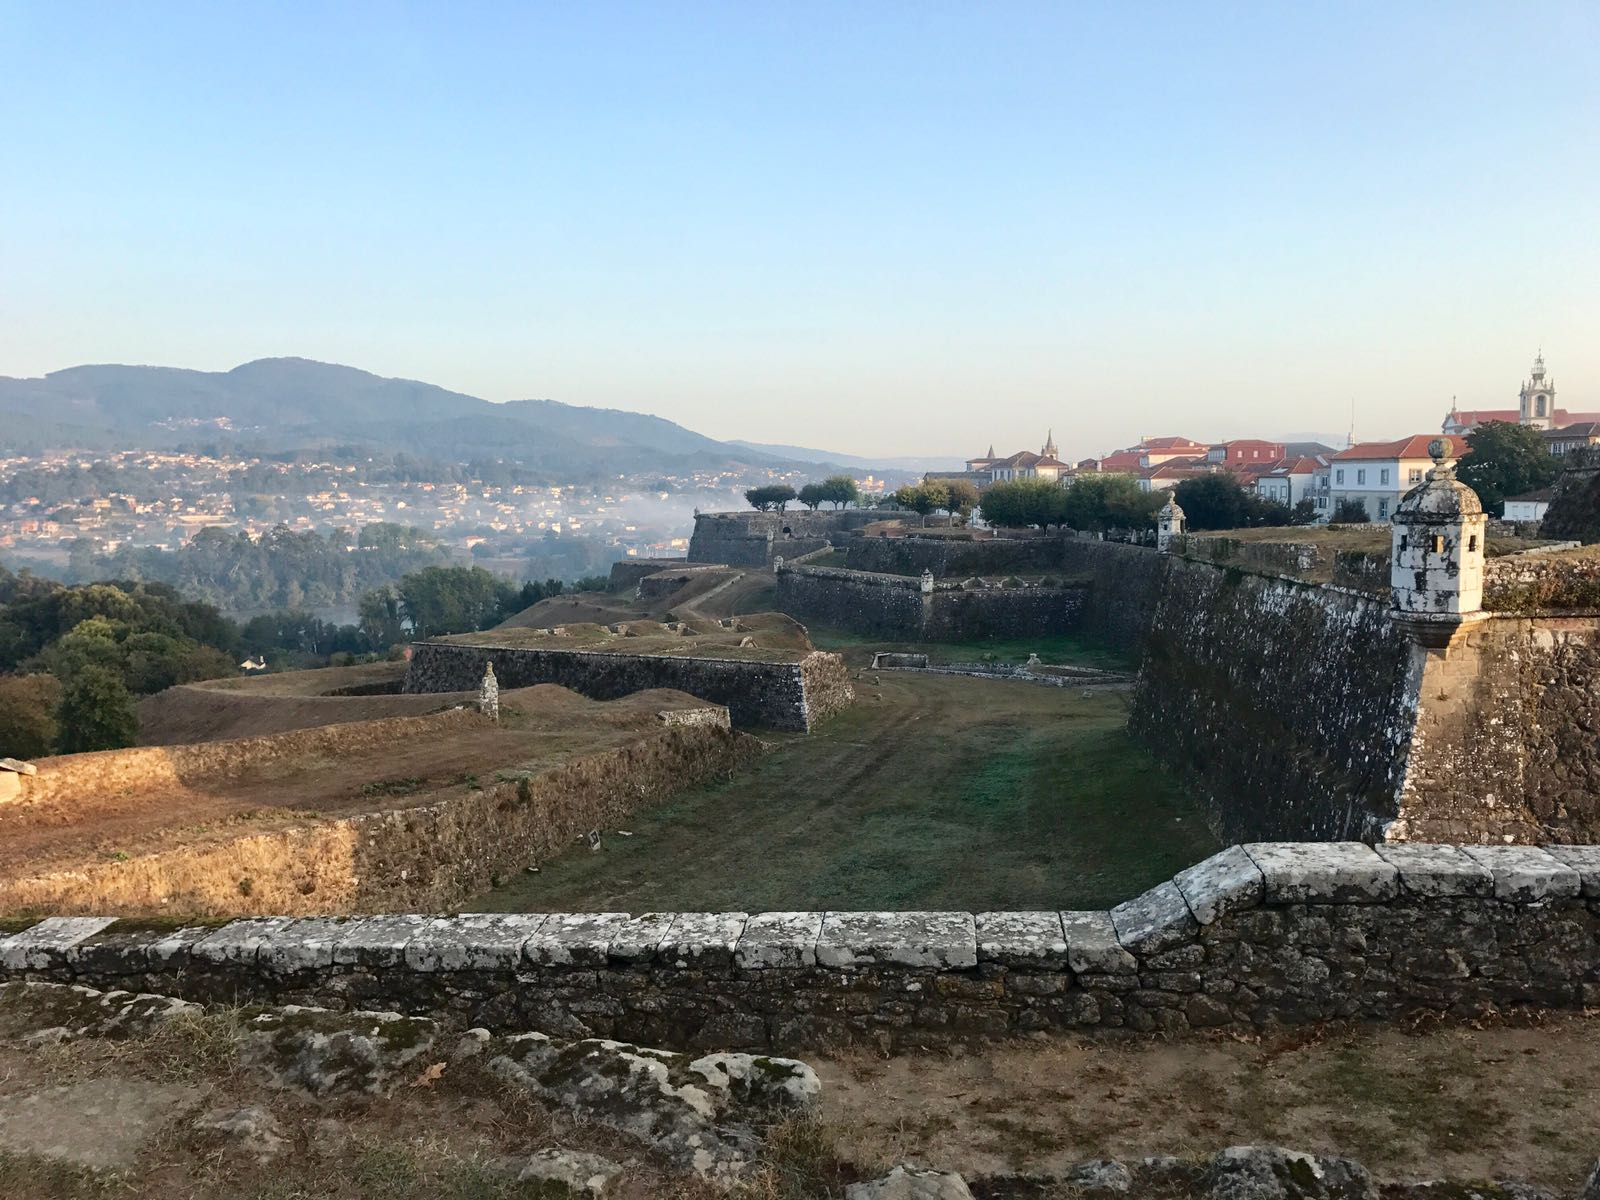 View from the ramparts of Valença fort, across the river to Tui